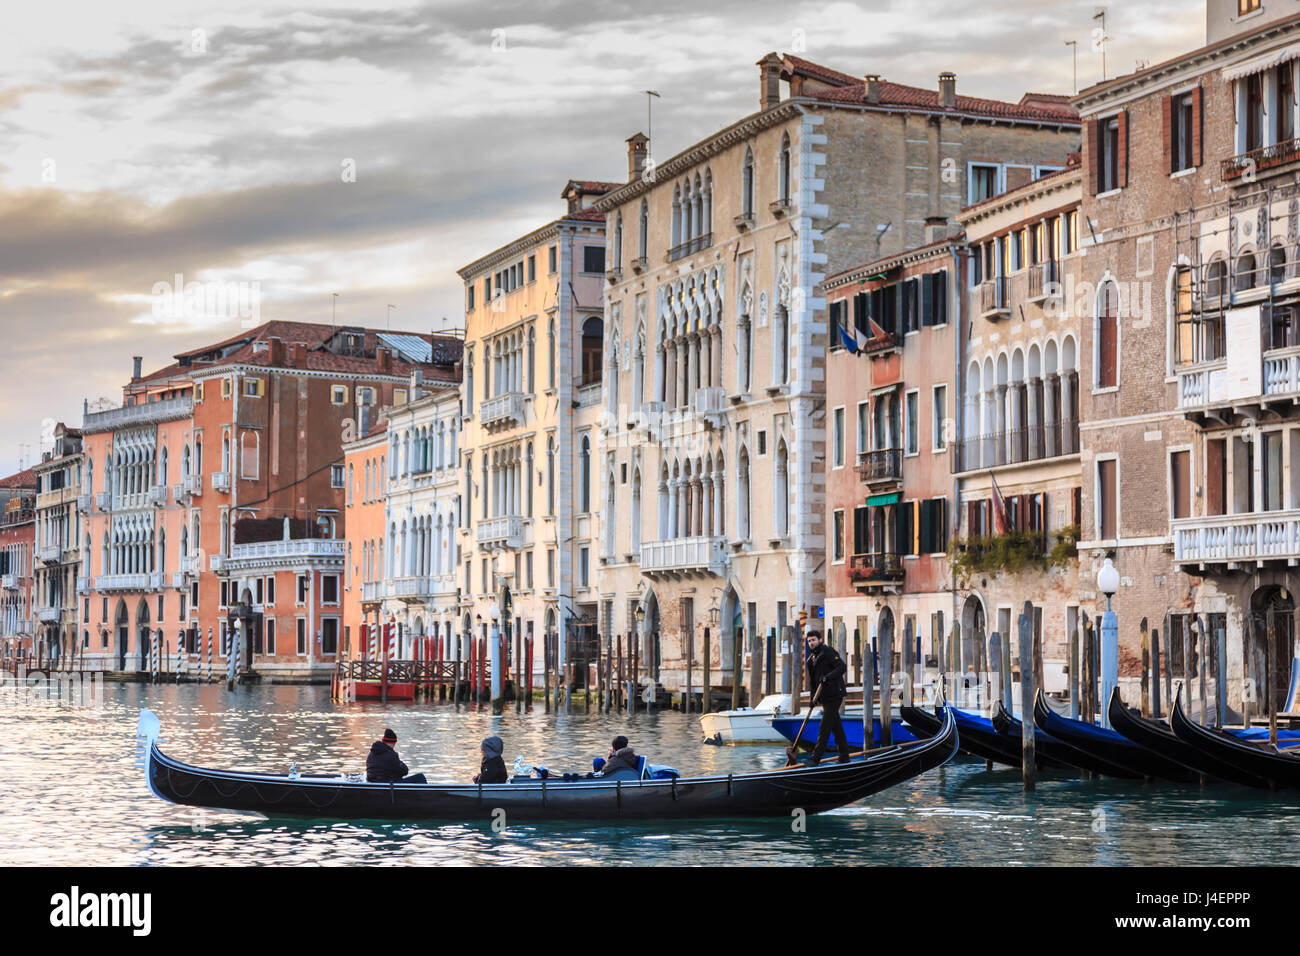 Gondola, La Volta, Grand Canal, elaborate Gothic palazzi at sunset in winter, Venice, UNESCO World Heritage Site, - Stock Image